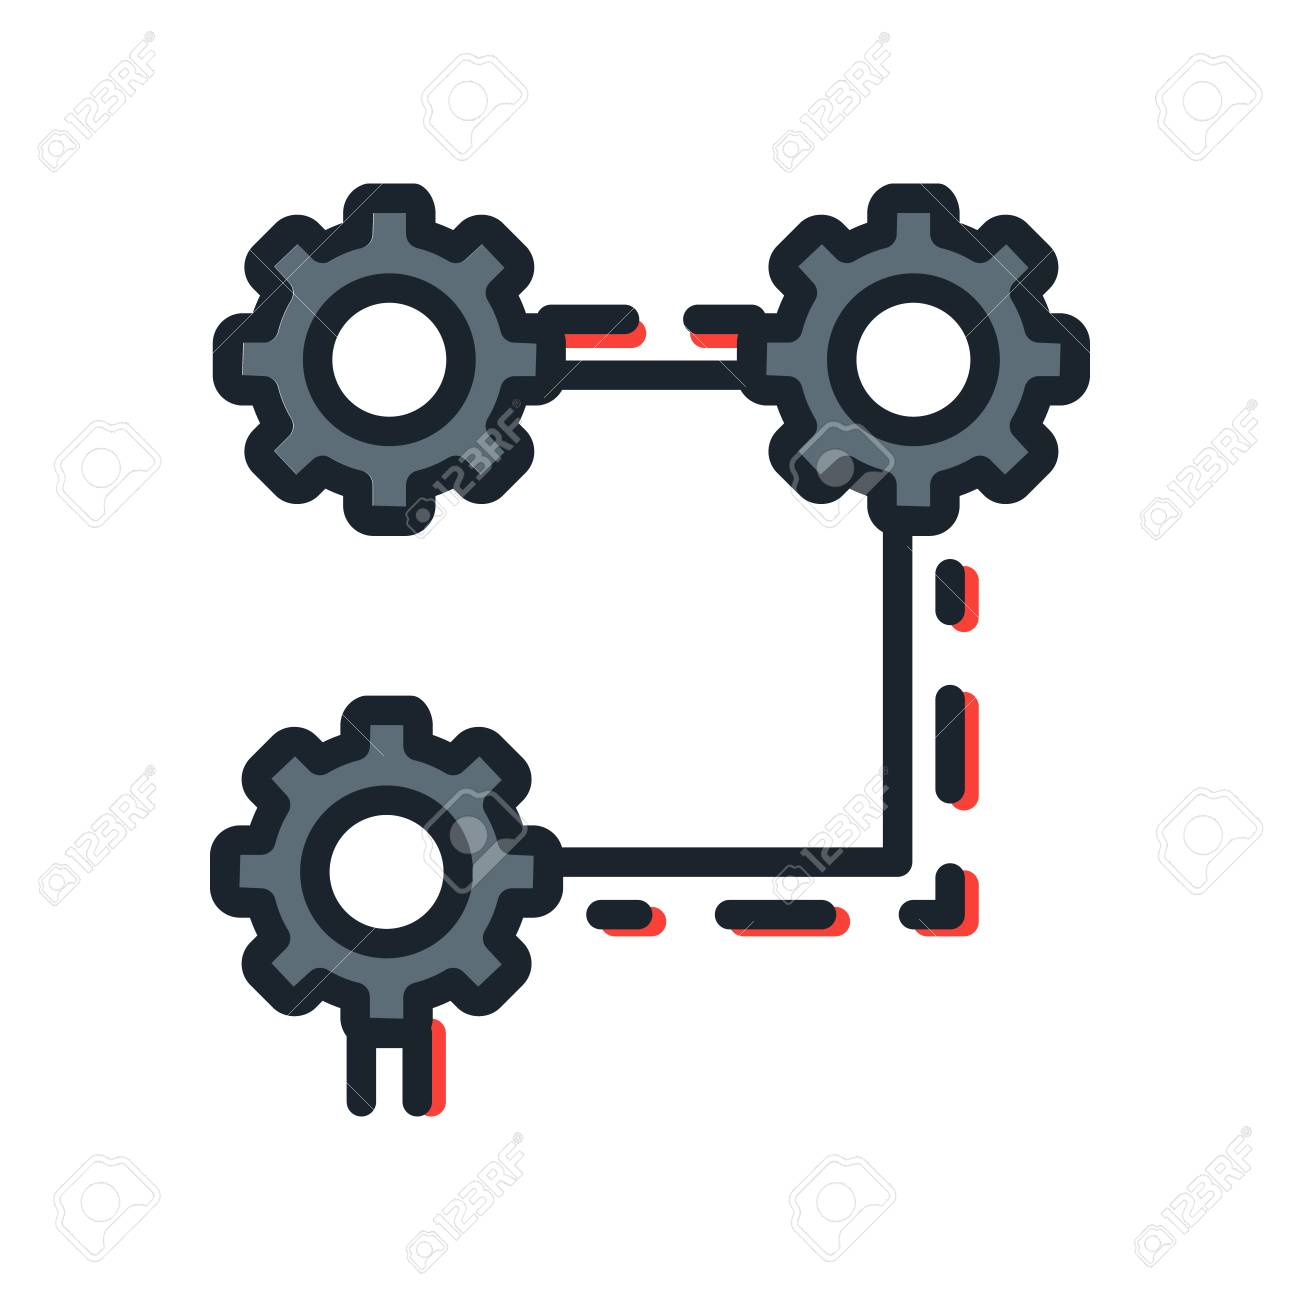 system structure icon color royalty free cliparts vectors and stock illustration image 68564329 system structure icon color